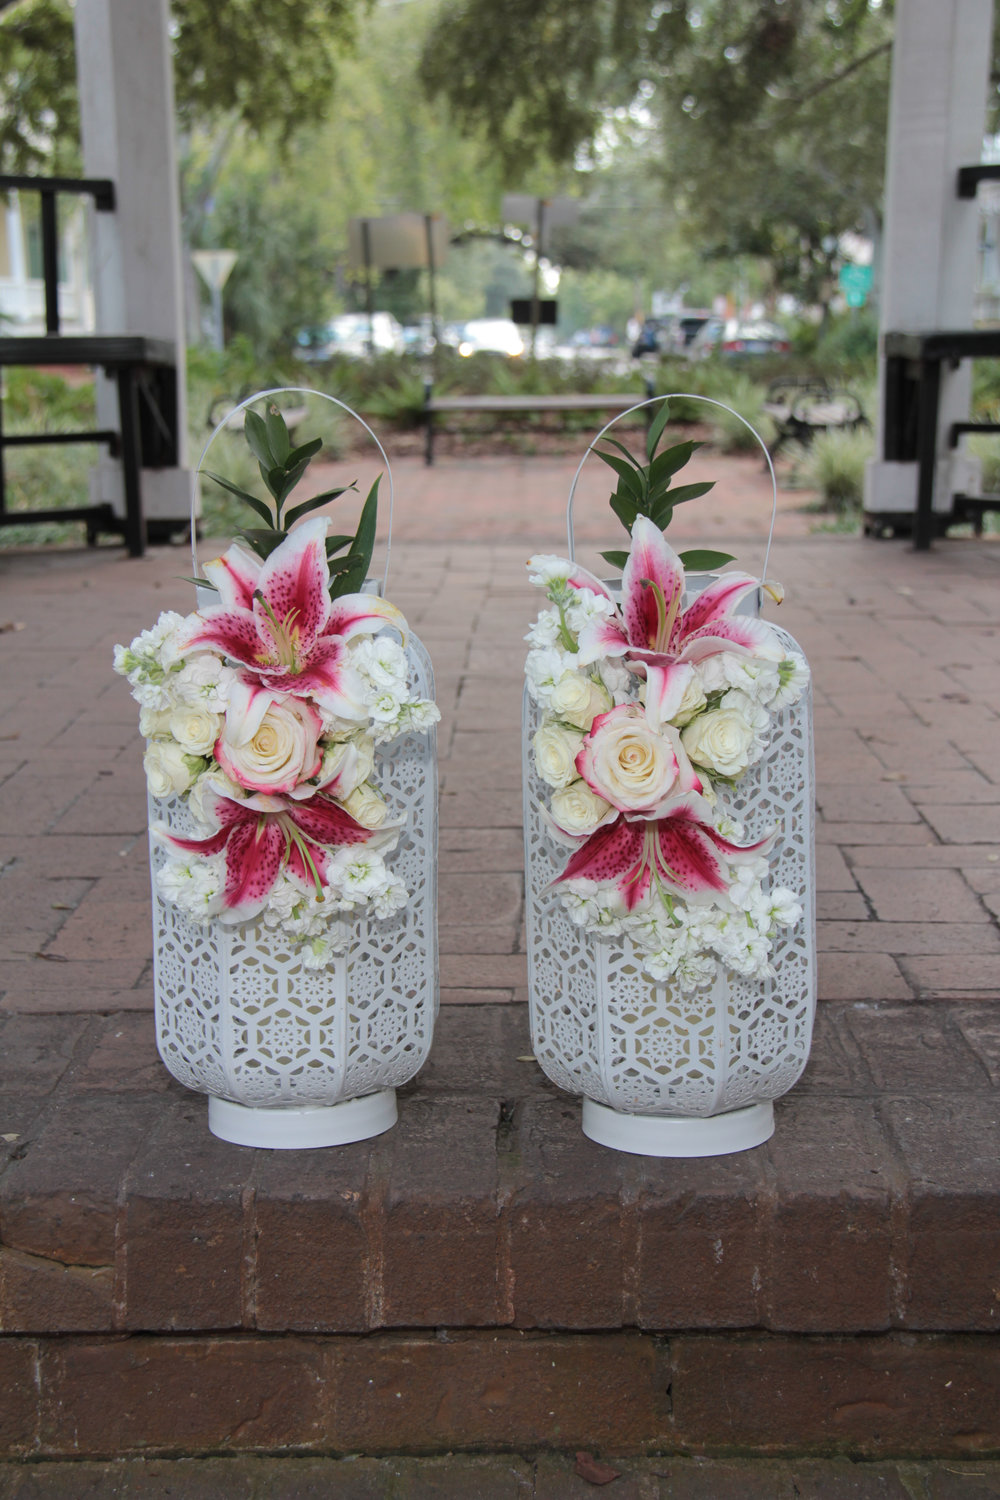 Savannah wedding, wedding packages, wedding flowers, destination wedding, lanterns, stargazer lily, wedding decor, decoration